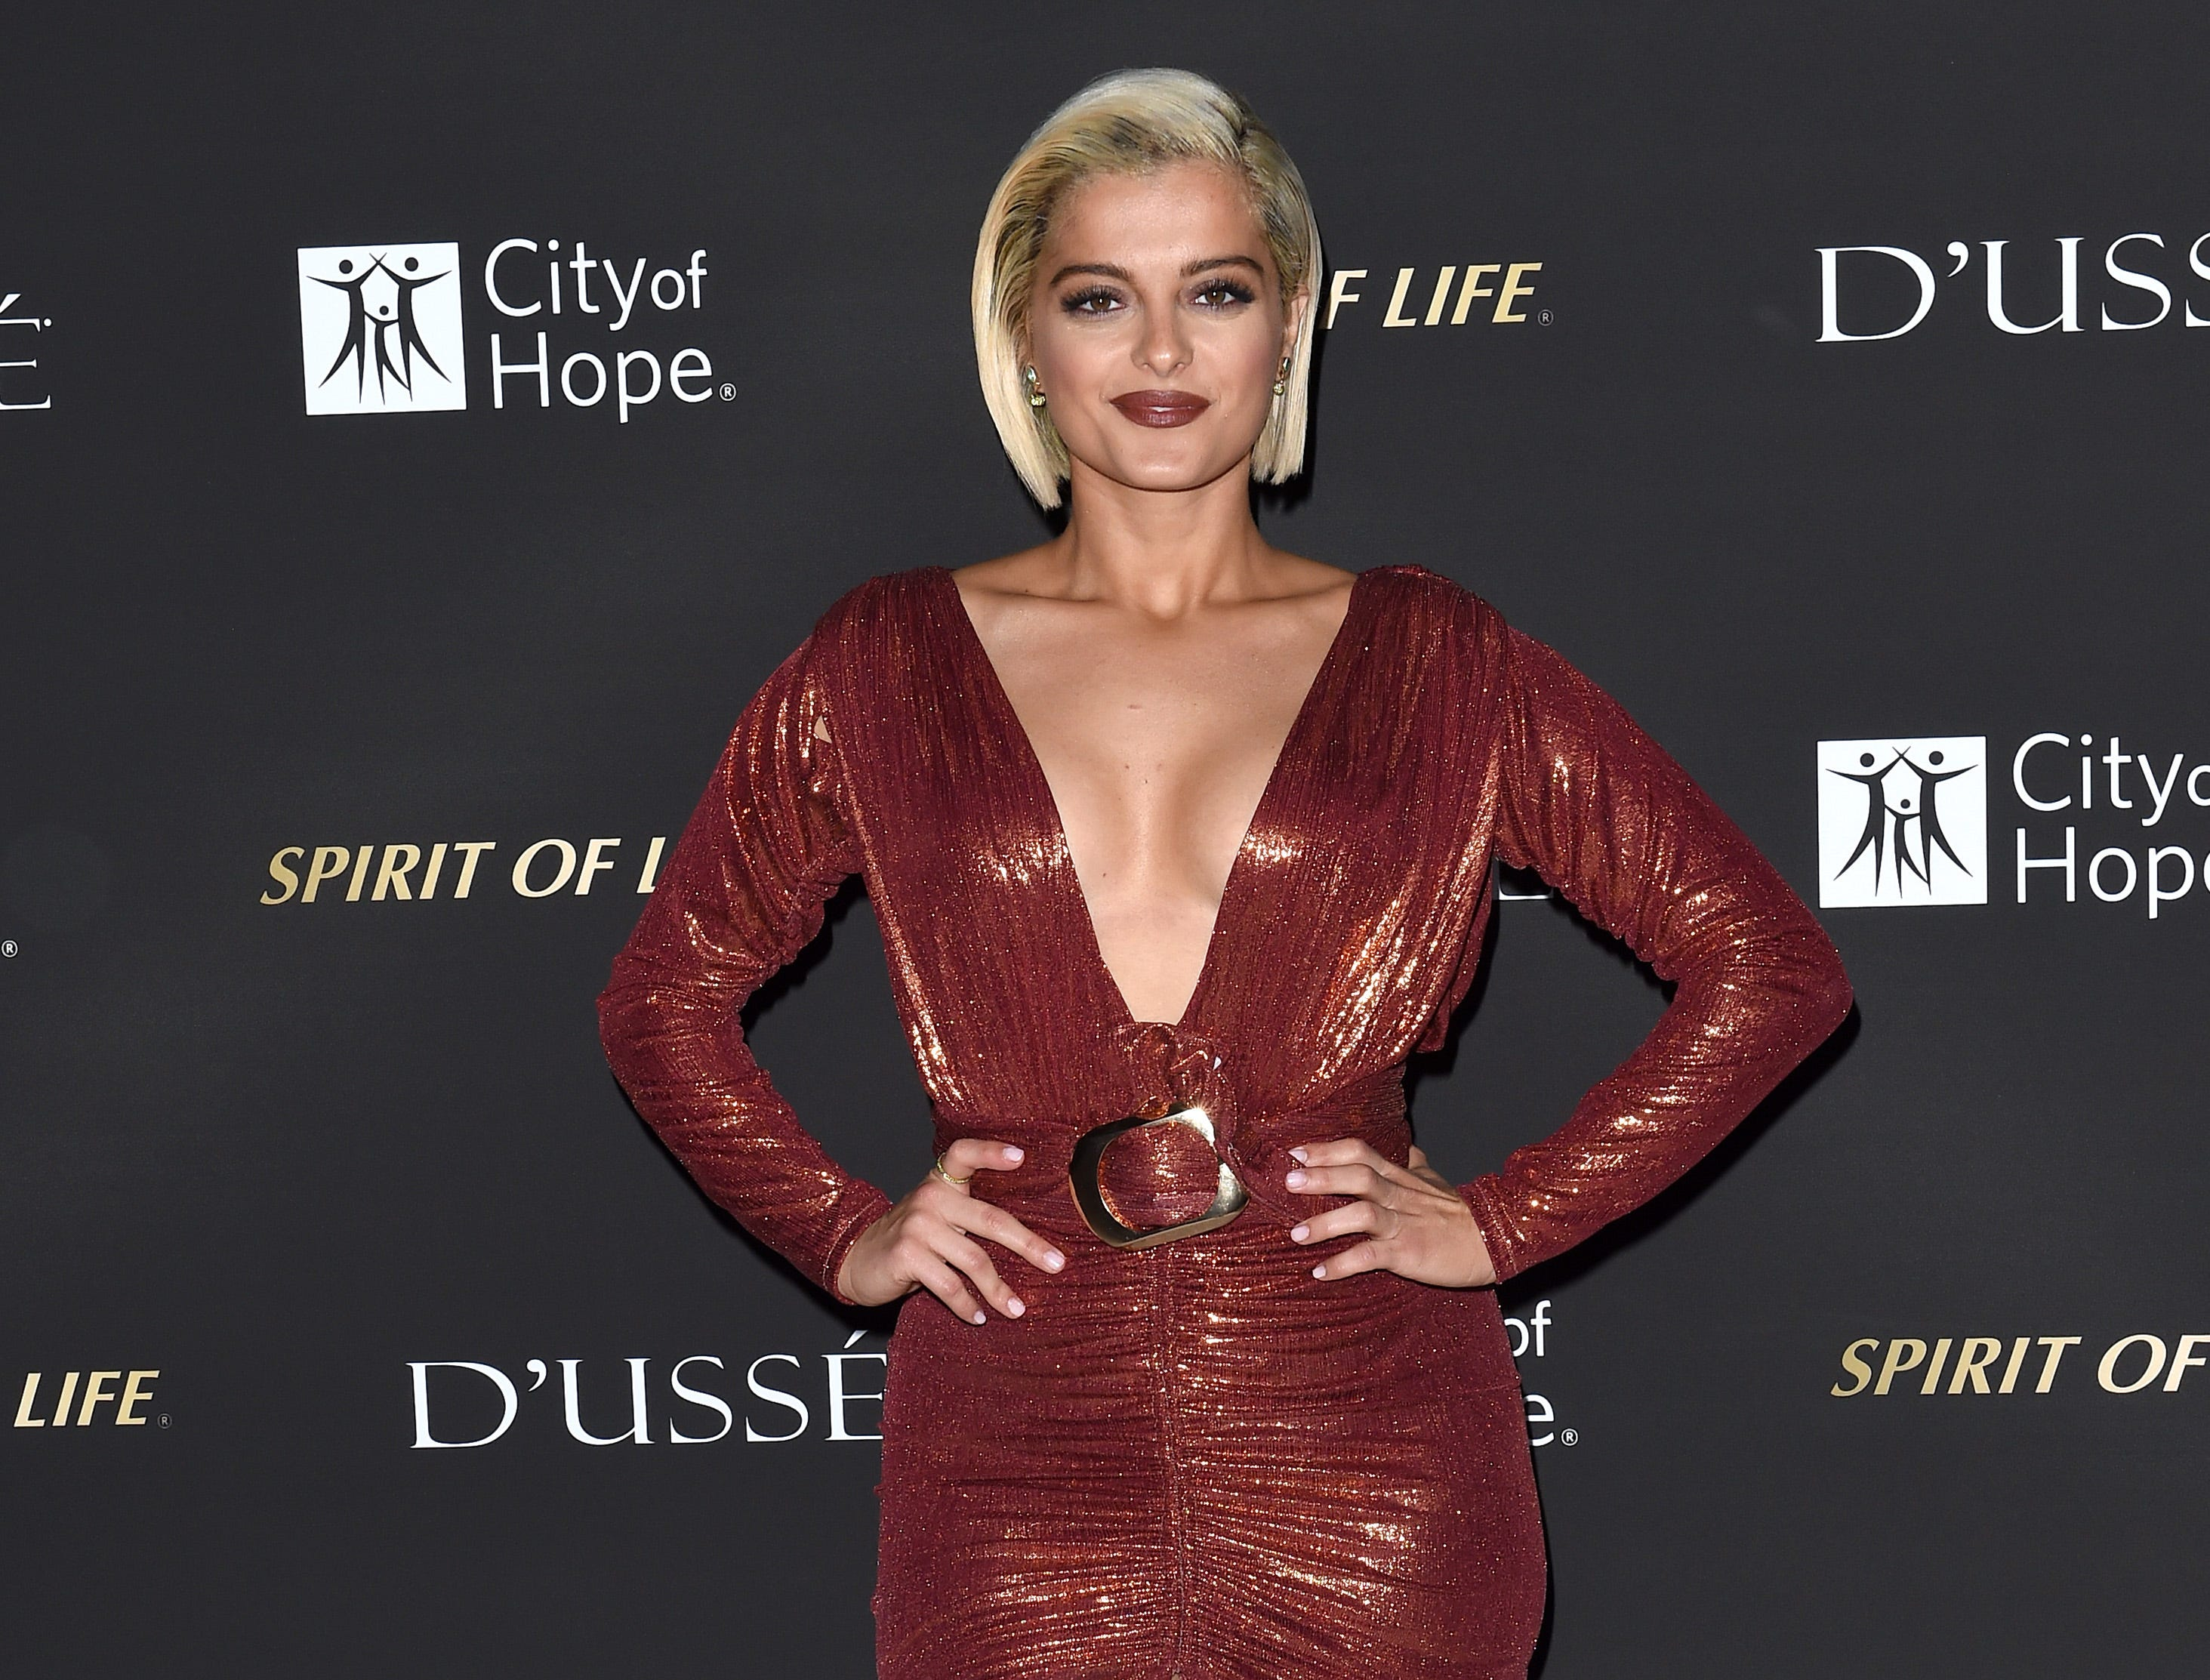 October 11: Bebe Rexha attends City of Hope Gala in Los Angeles.